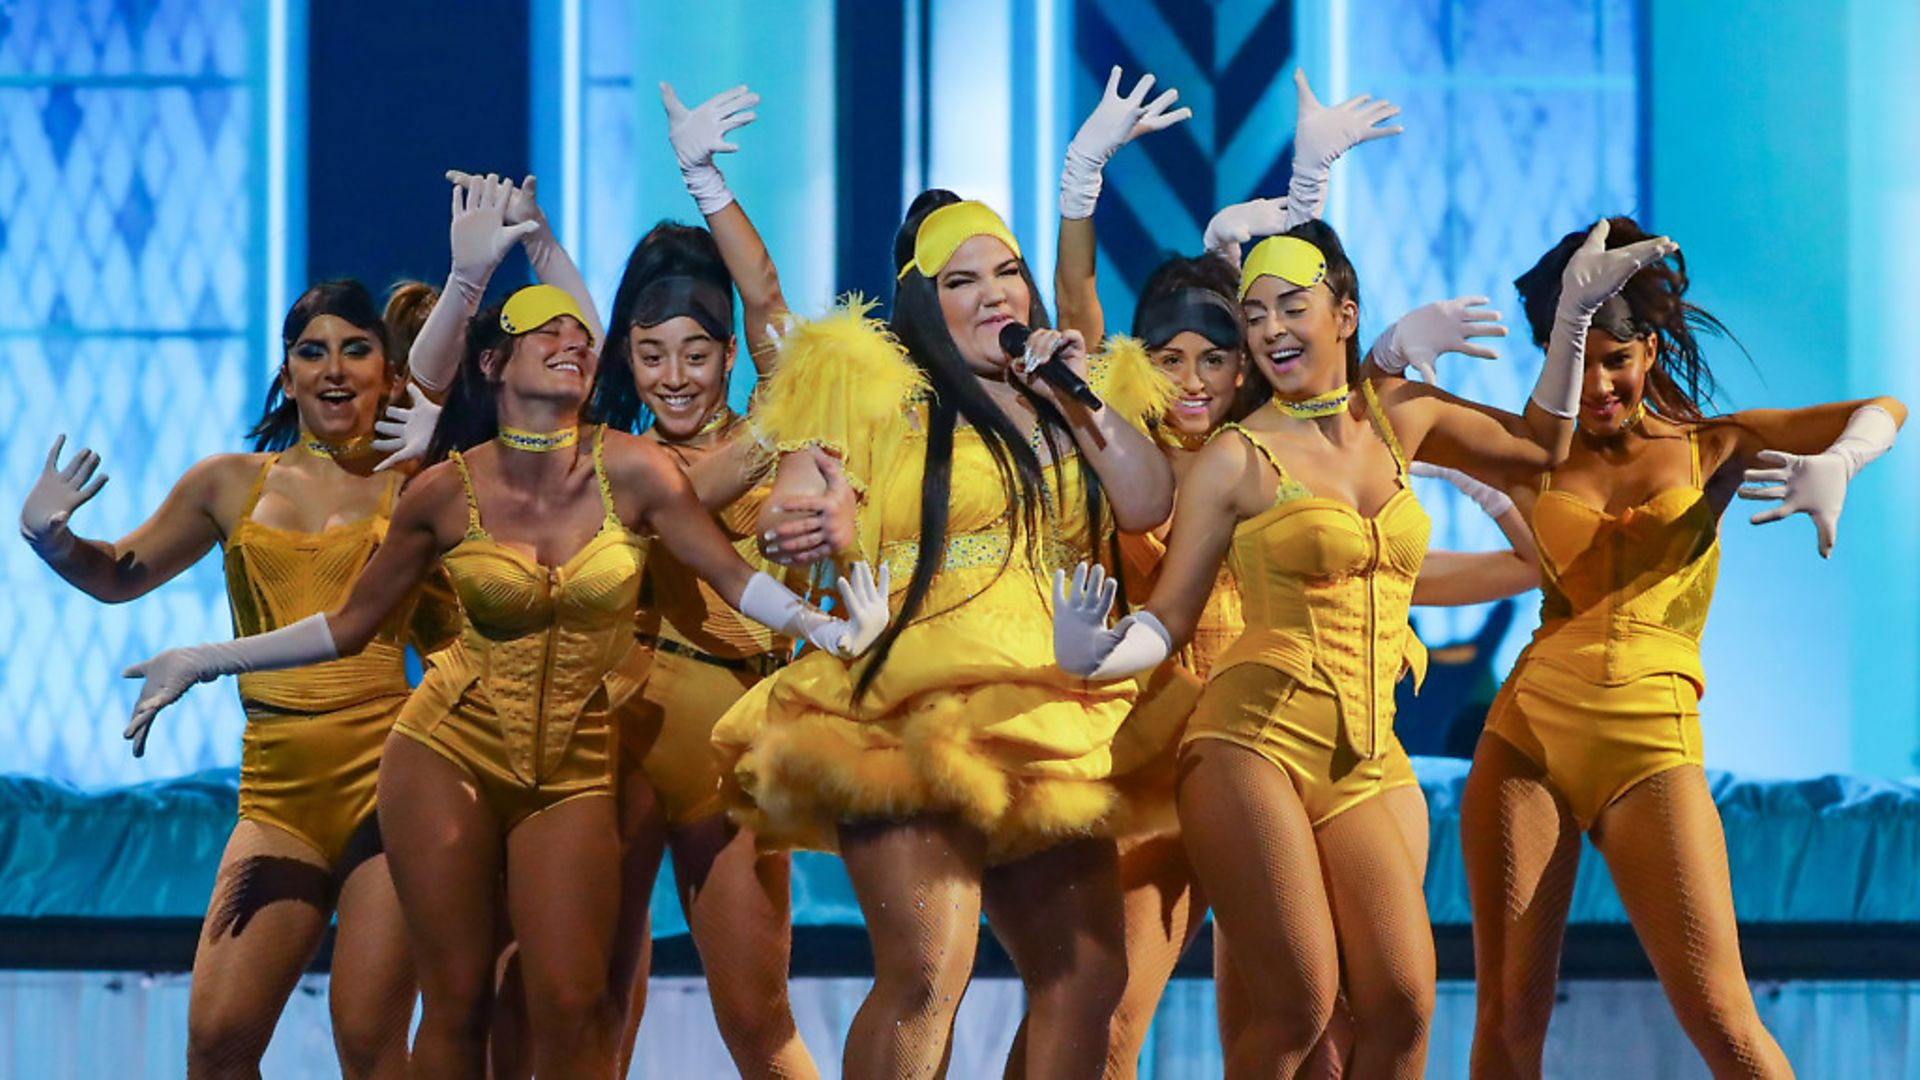 Israeli singer Netta Barzilai, the winner of the 2018 Eurovision Song Contest, performs during a dress rehearsal for the 2019 Eurovision Song Contest Grand Final. Picture: Vyacheslav ProkofyevTASS via Getty Images - Credit: Vyacheslav Prokofyev/TASS